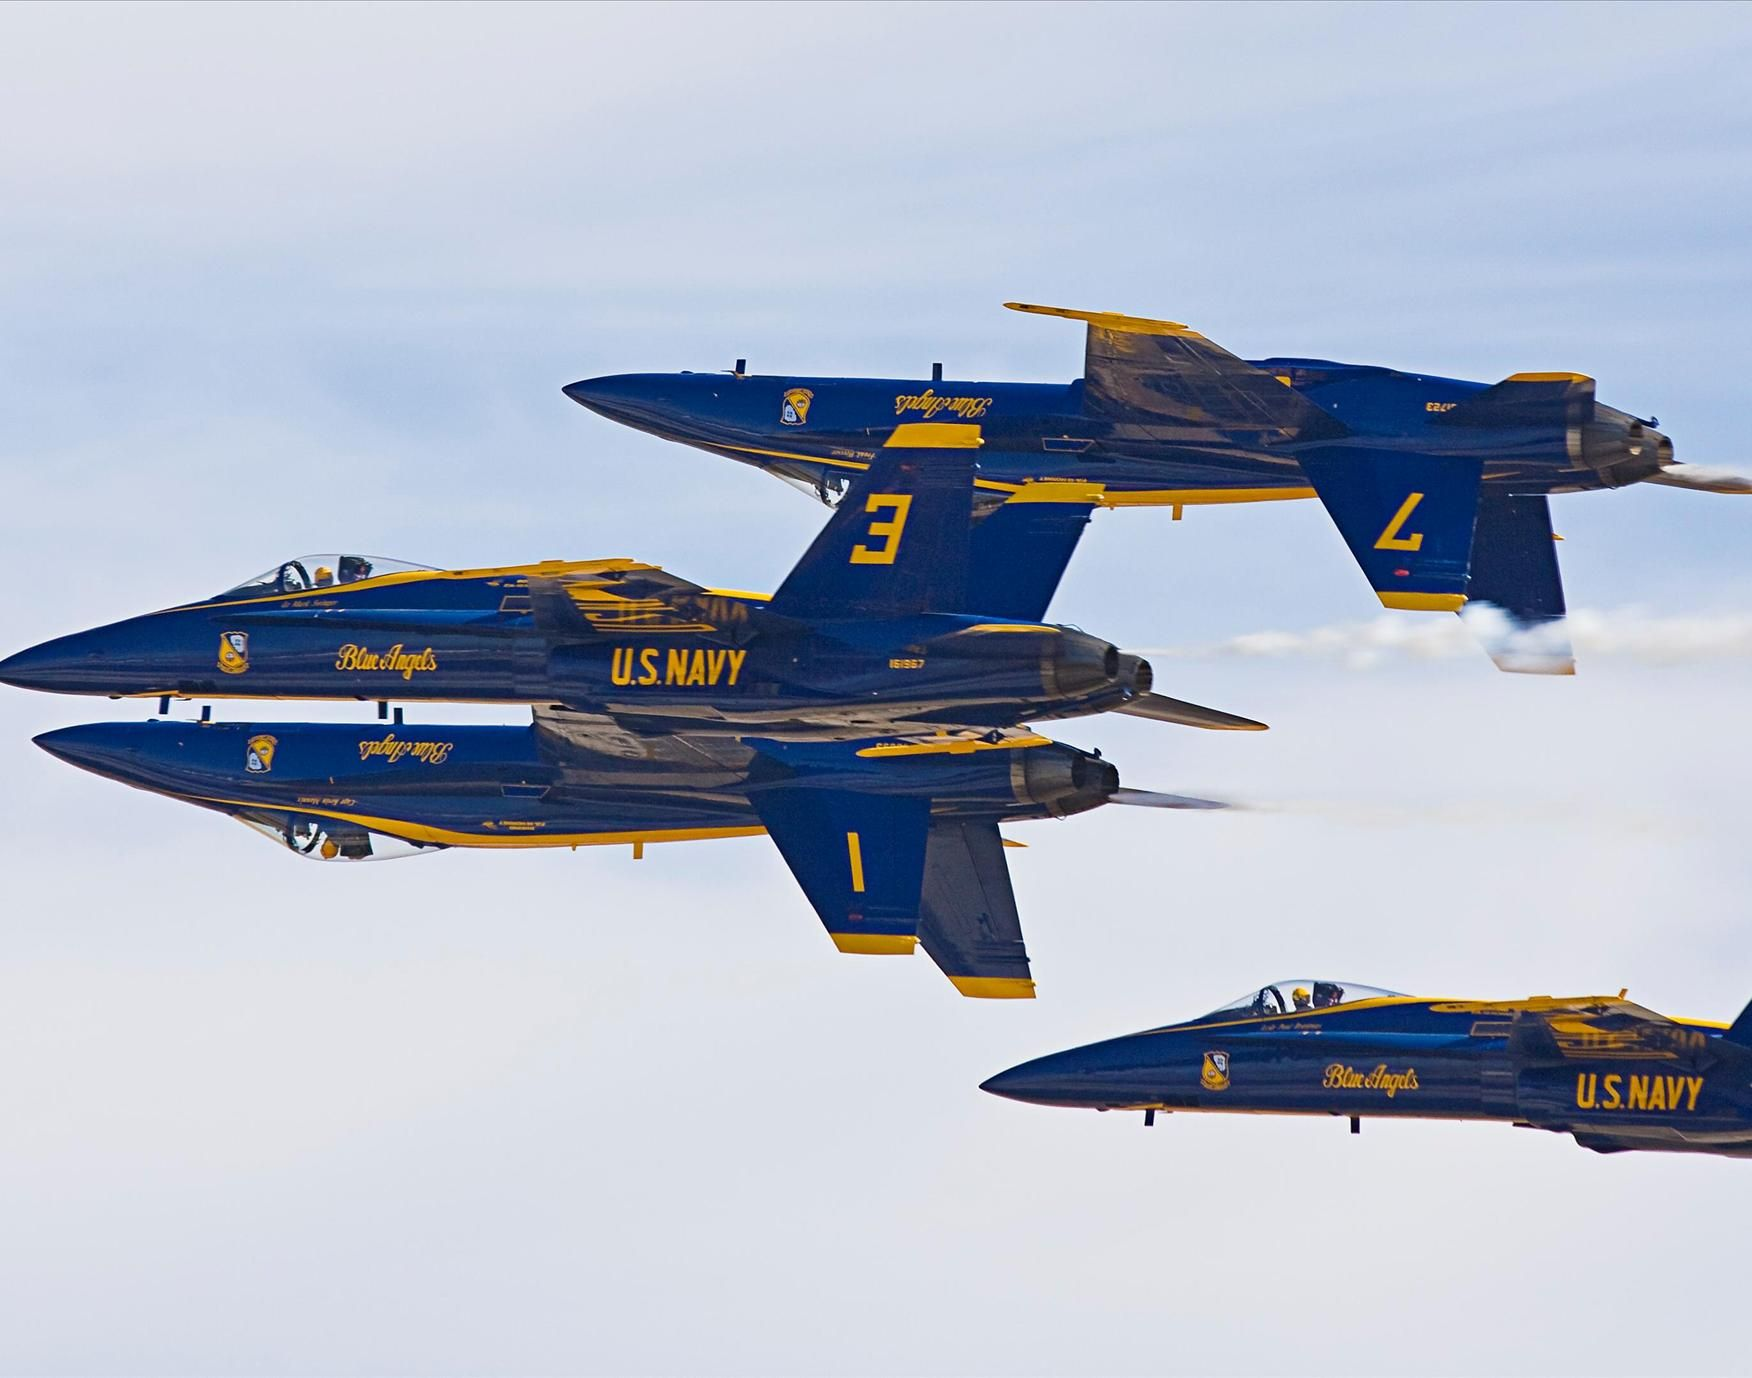 Pin By Stephanie Ayres On Birds Blue Angels Us Navy Blue Angels Air Fighter